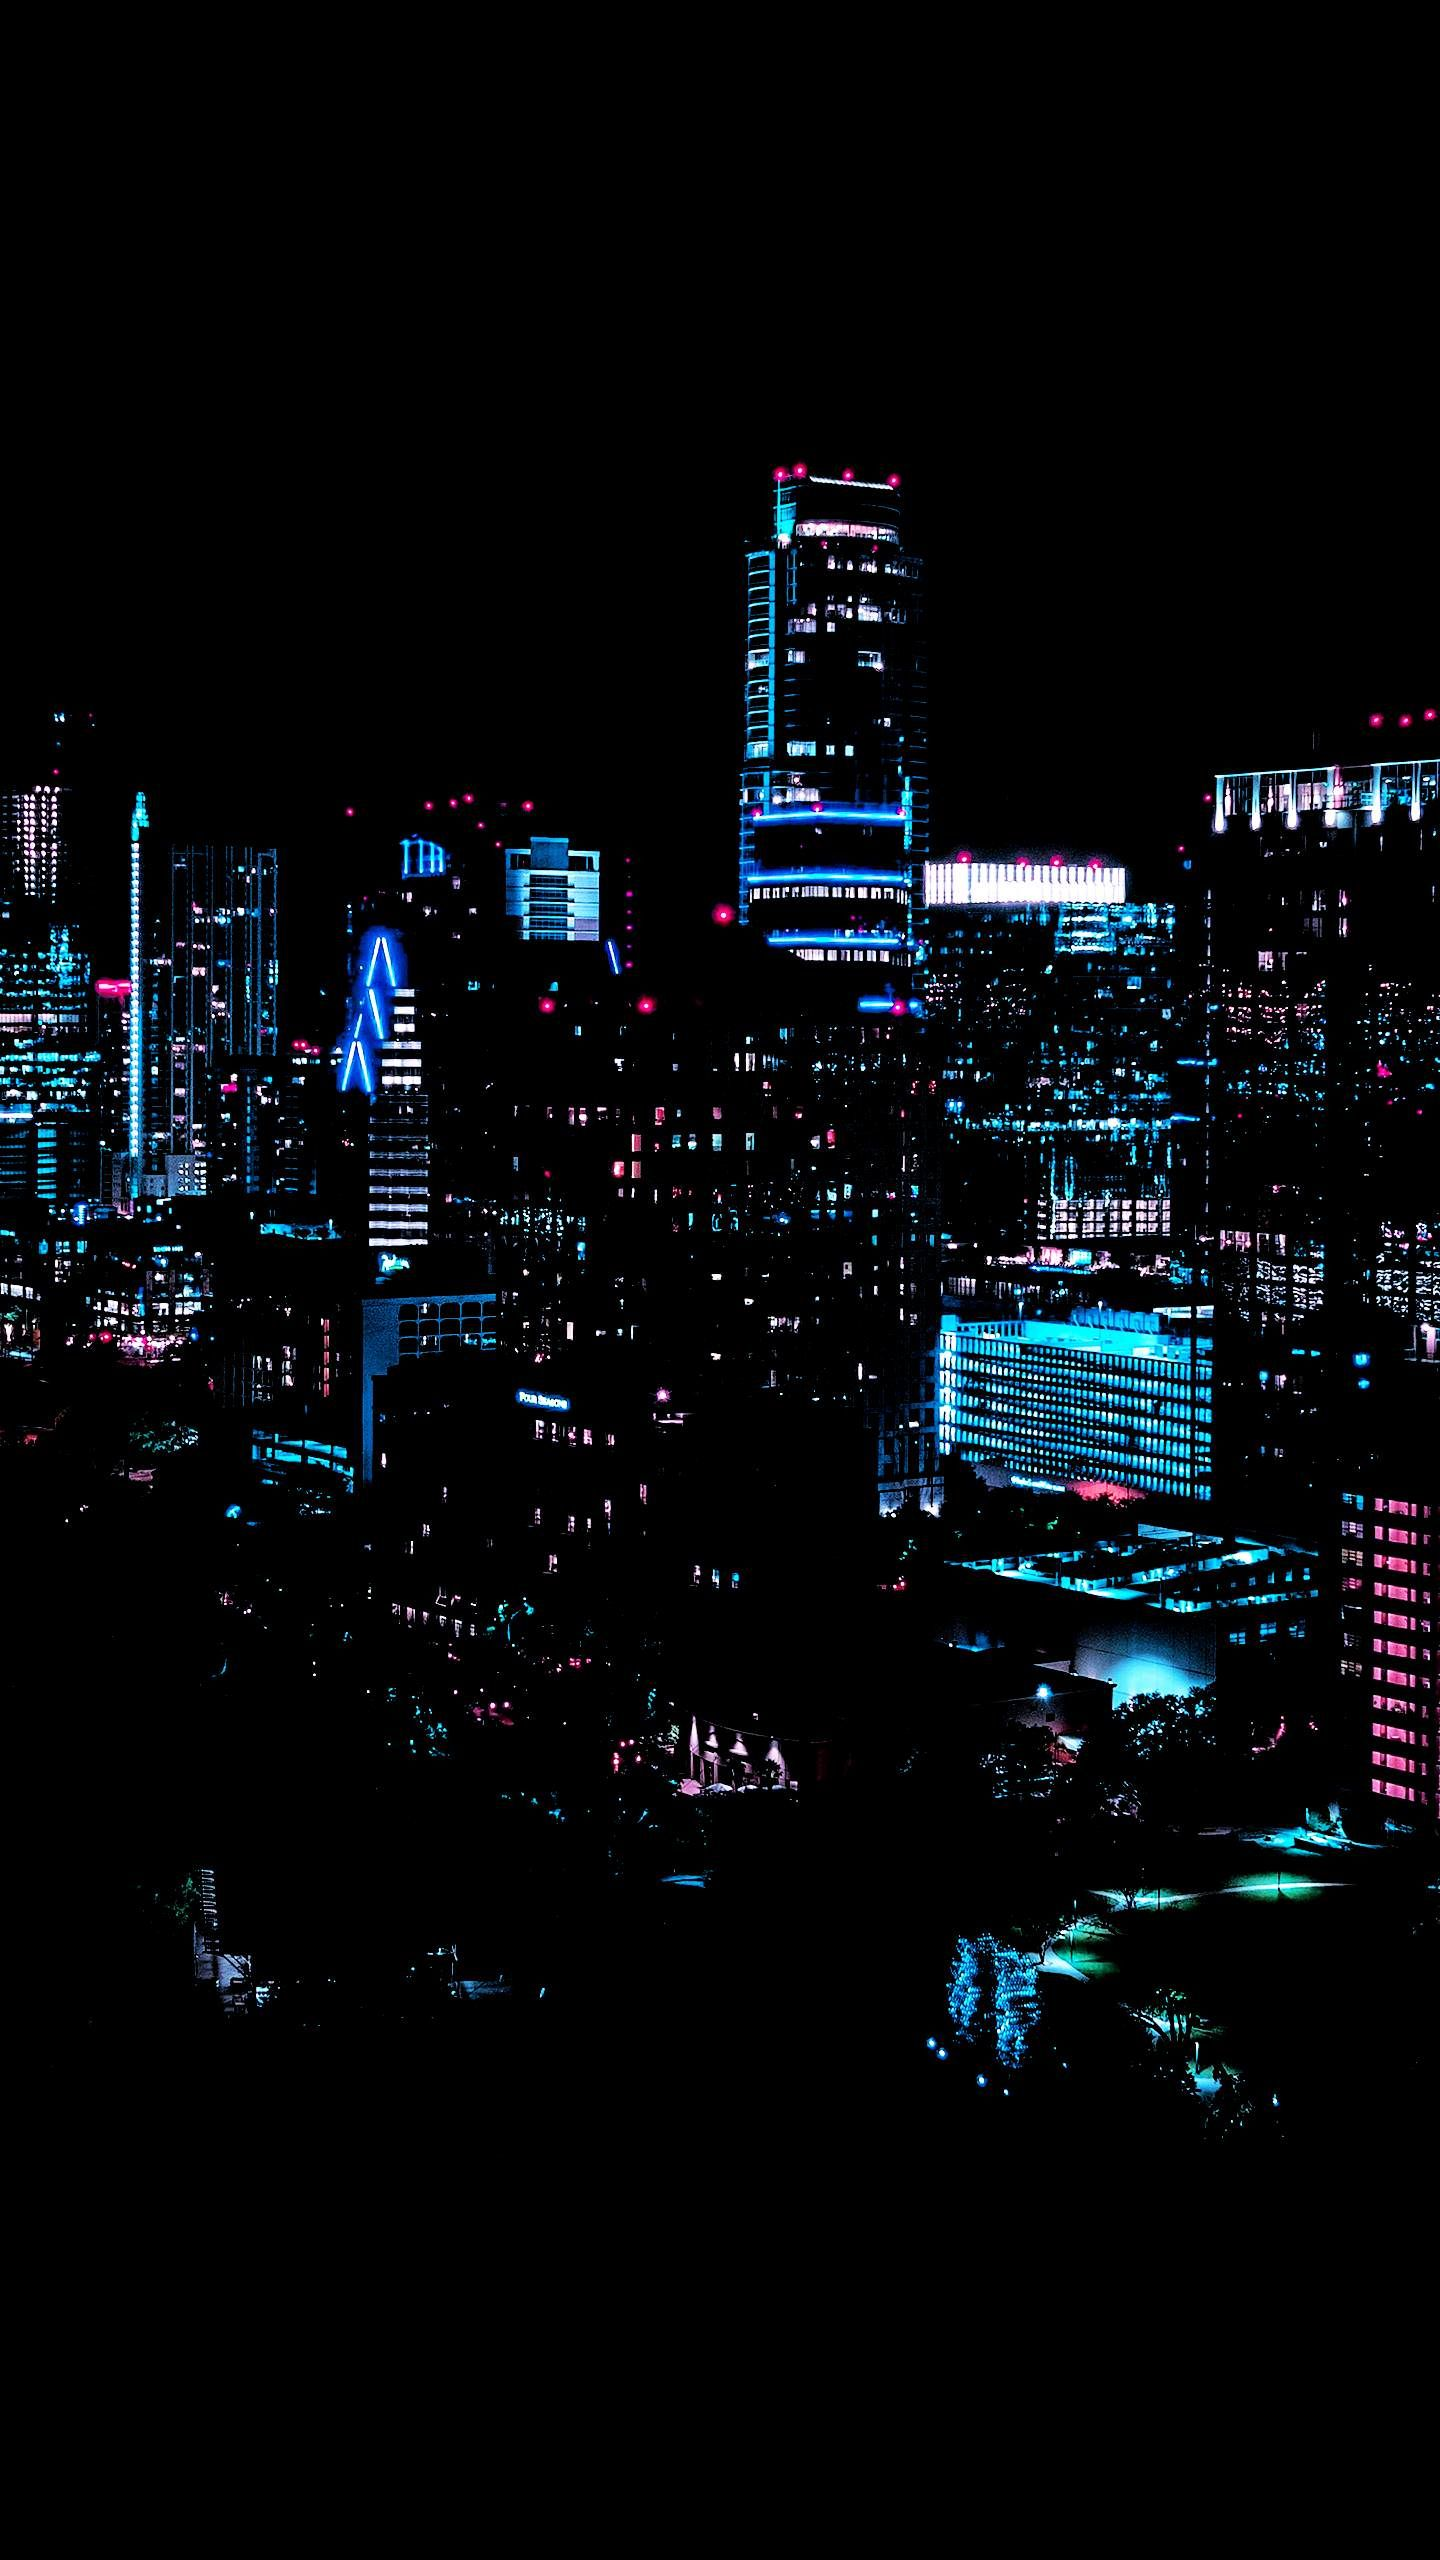 neon city | City lights wallpaper, Cityscape wallpaper ...